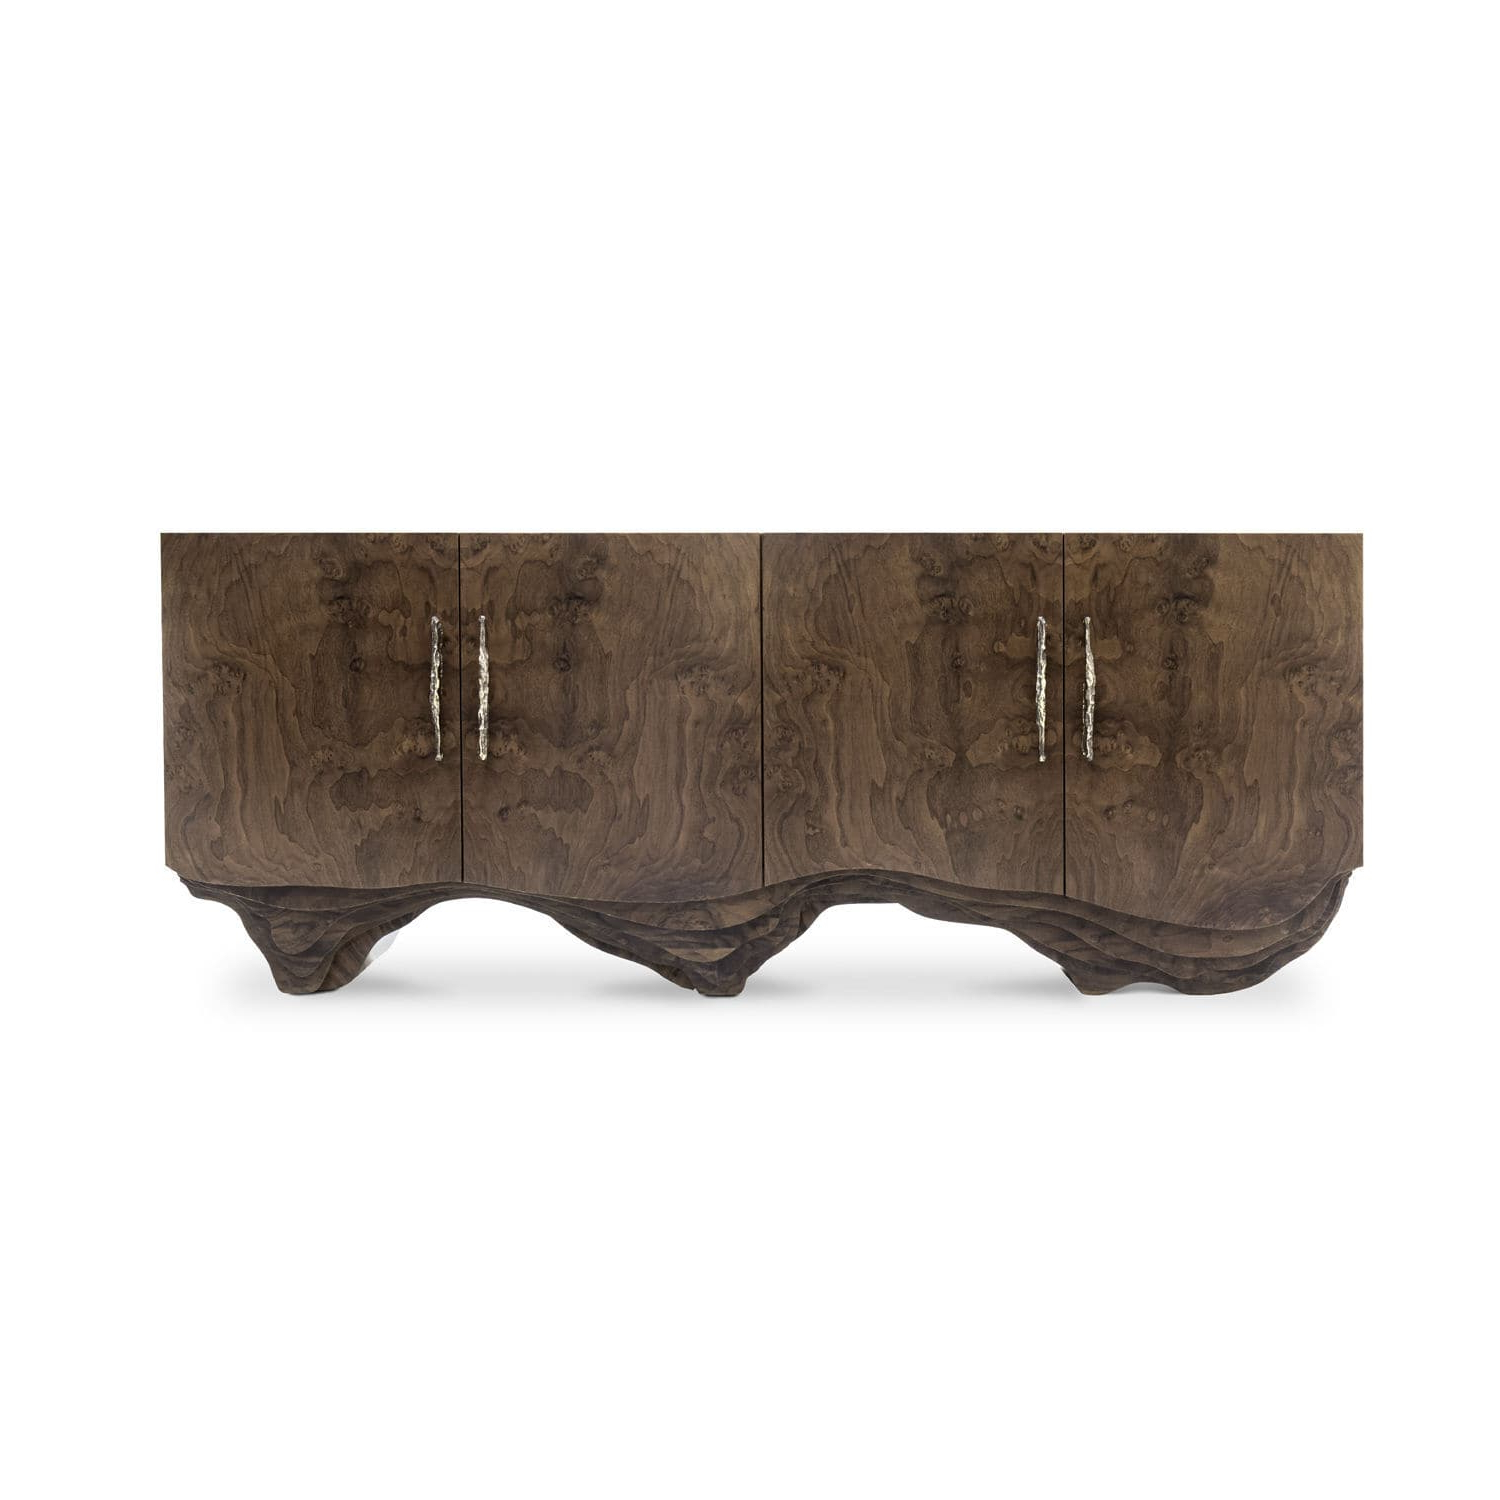 Aged Brass Sideboards Inside Most Up To Date Contemporary Sideboard / Walnut / Wood Veneer / Polished Brass (Gallery 14 of 20)